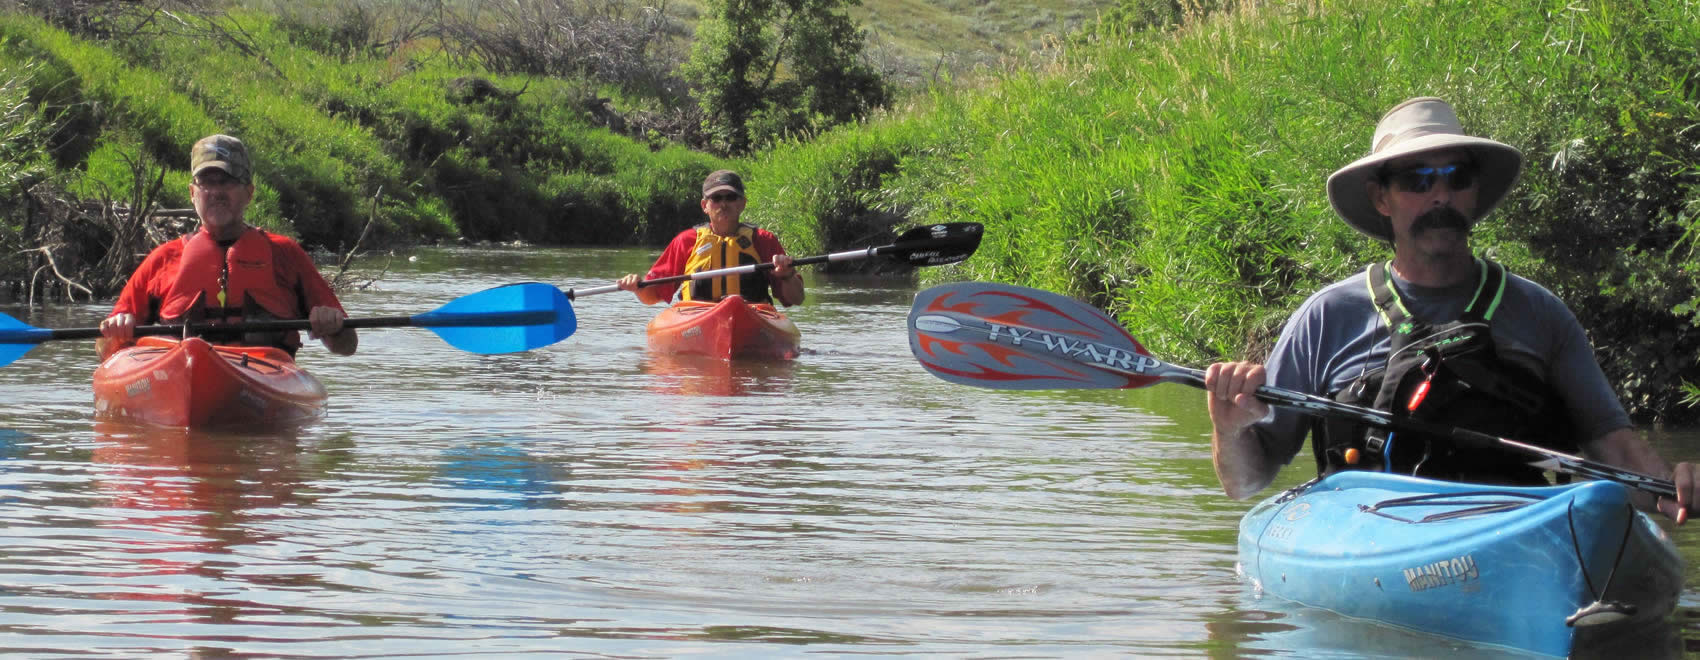 Carefree Adventures Kayak Tours